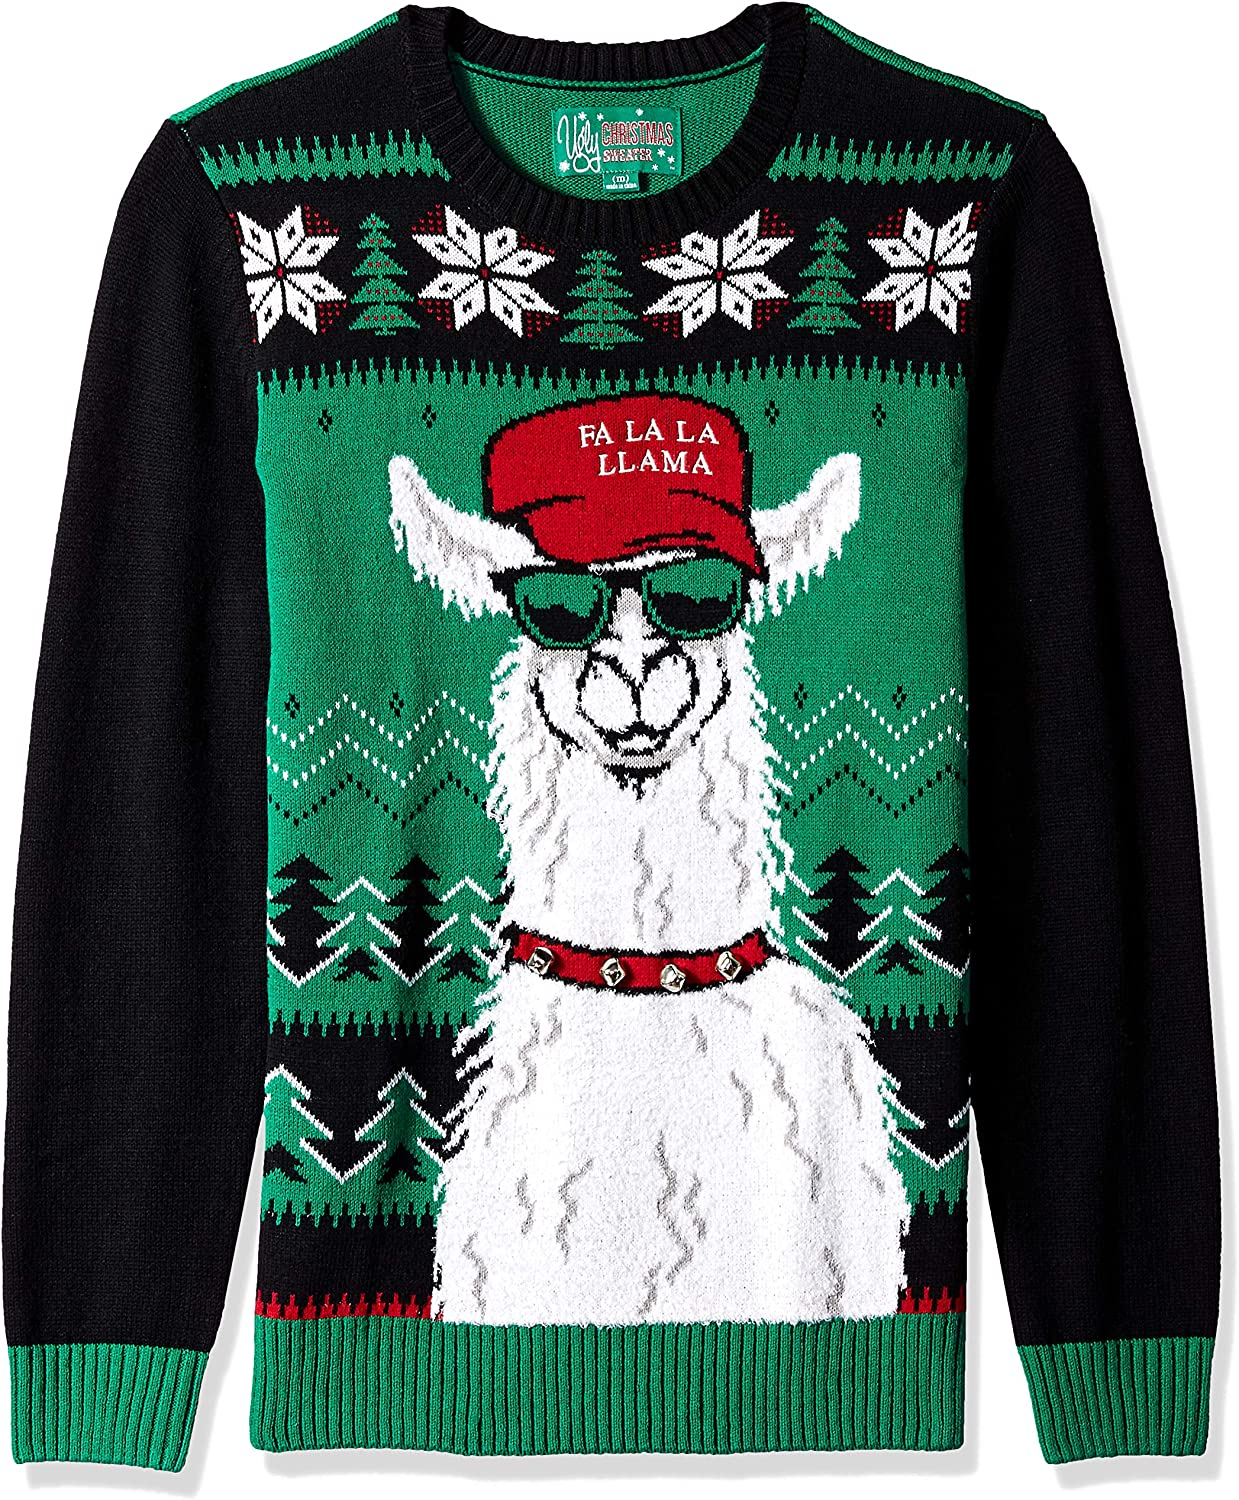 Ugly Christmas Sweater Company Mens Ugly Christmas Sweater Xmas Llama Pullover Sweater